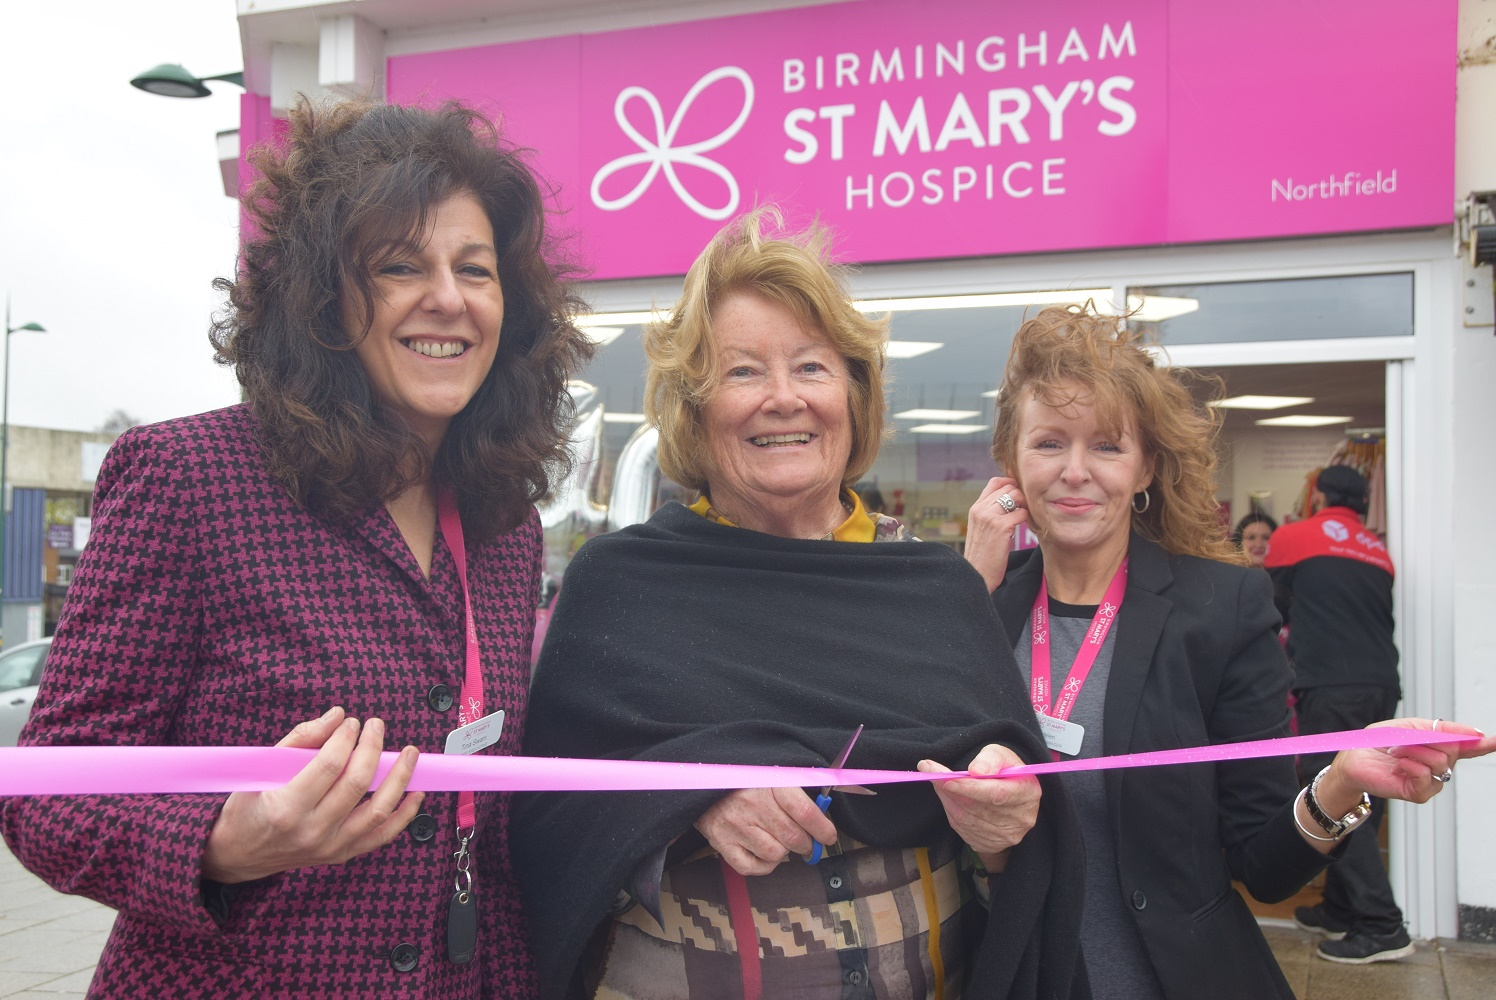 Longest serving volunteer opens new hospice shop in its milestone anniversary year